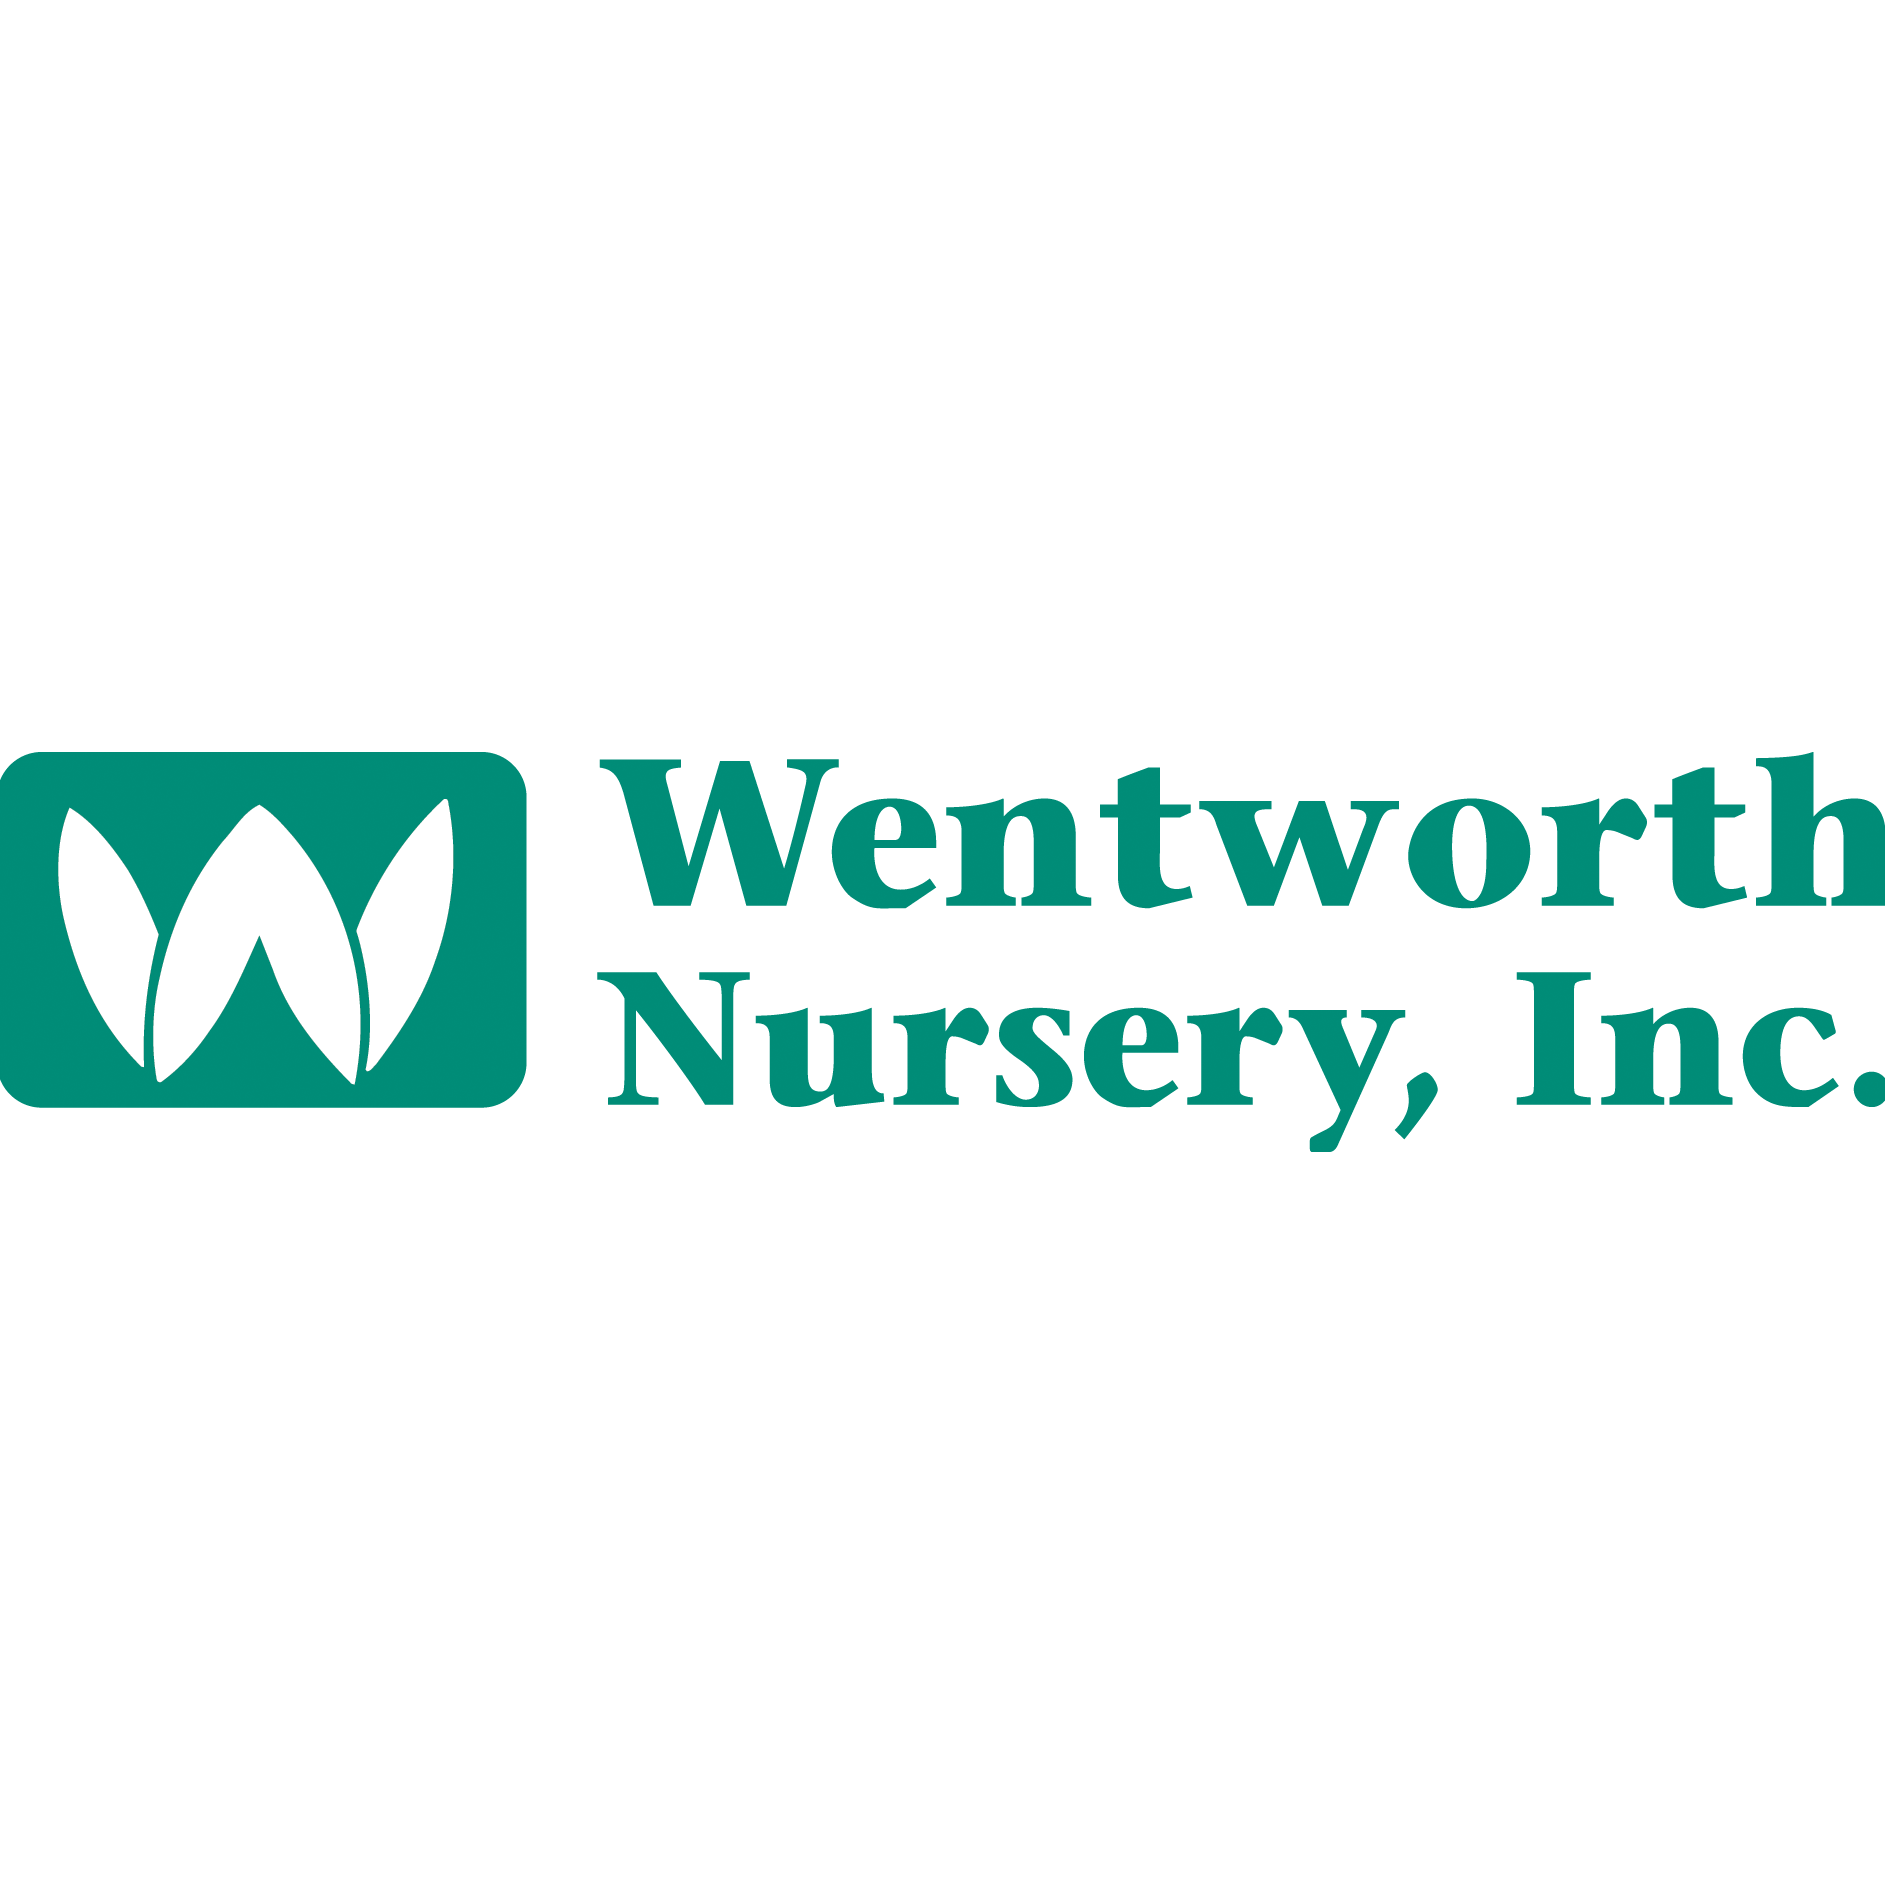 Wentworth Nursery